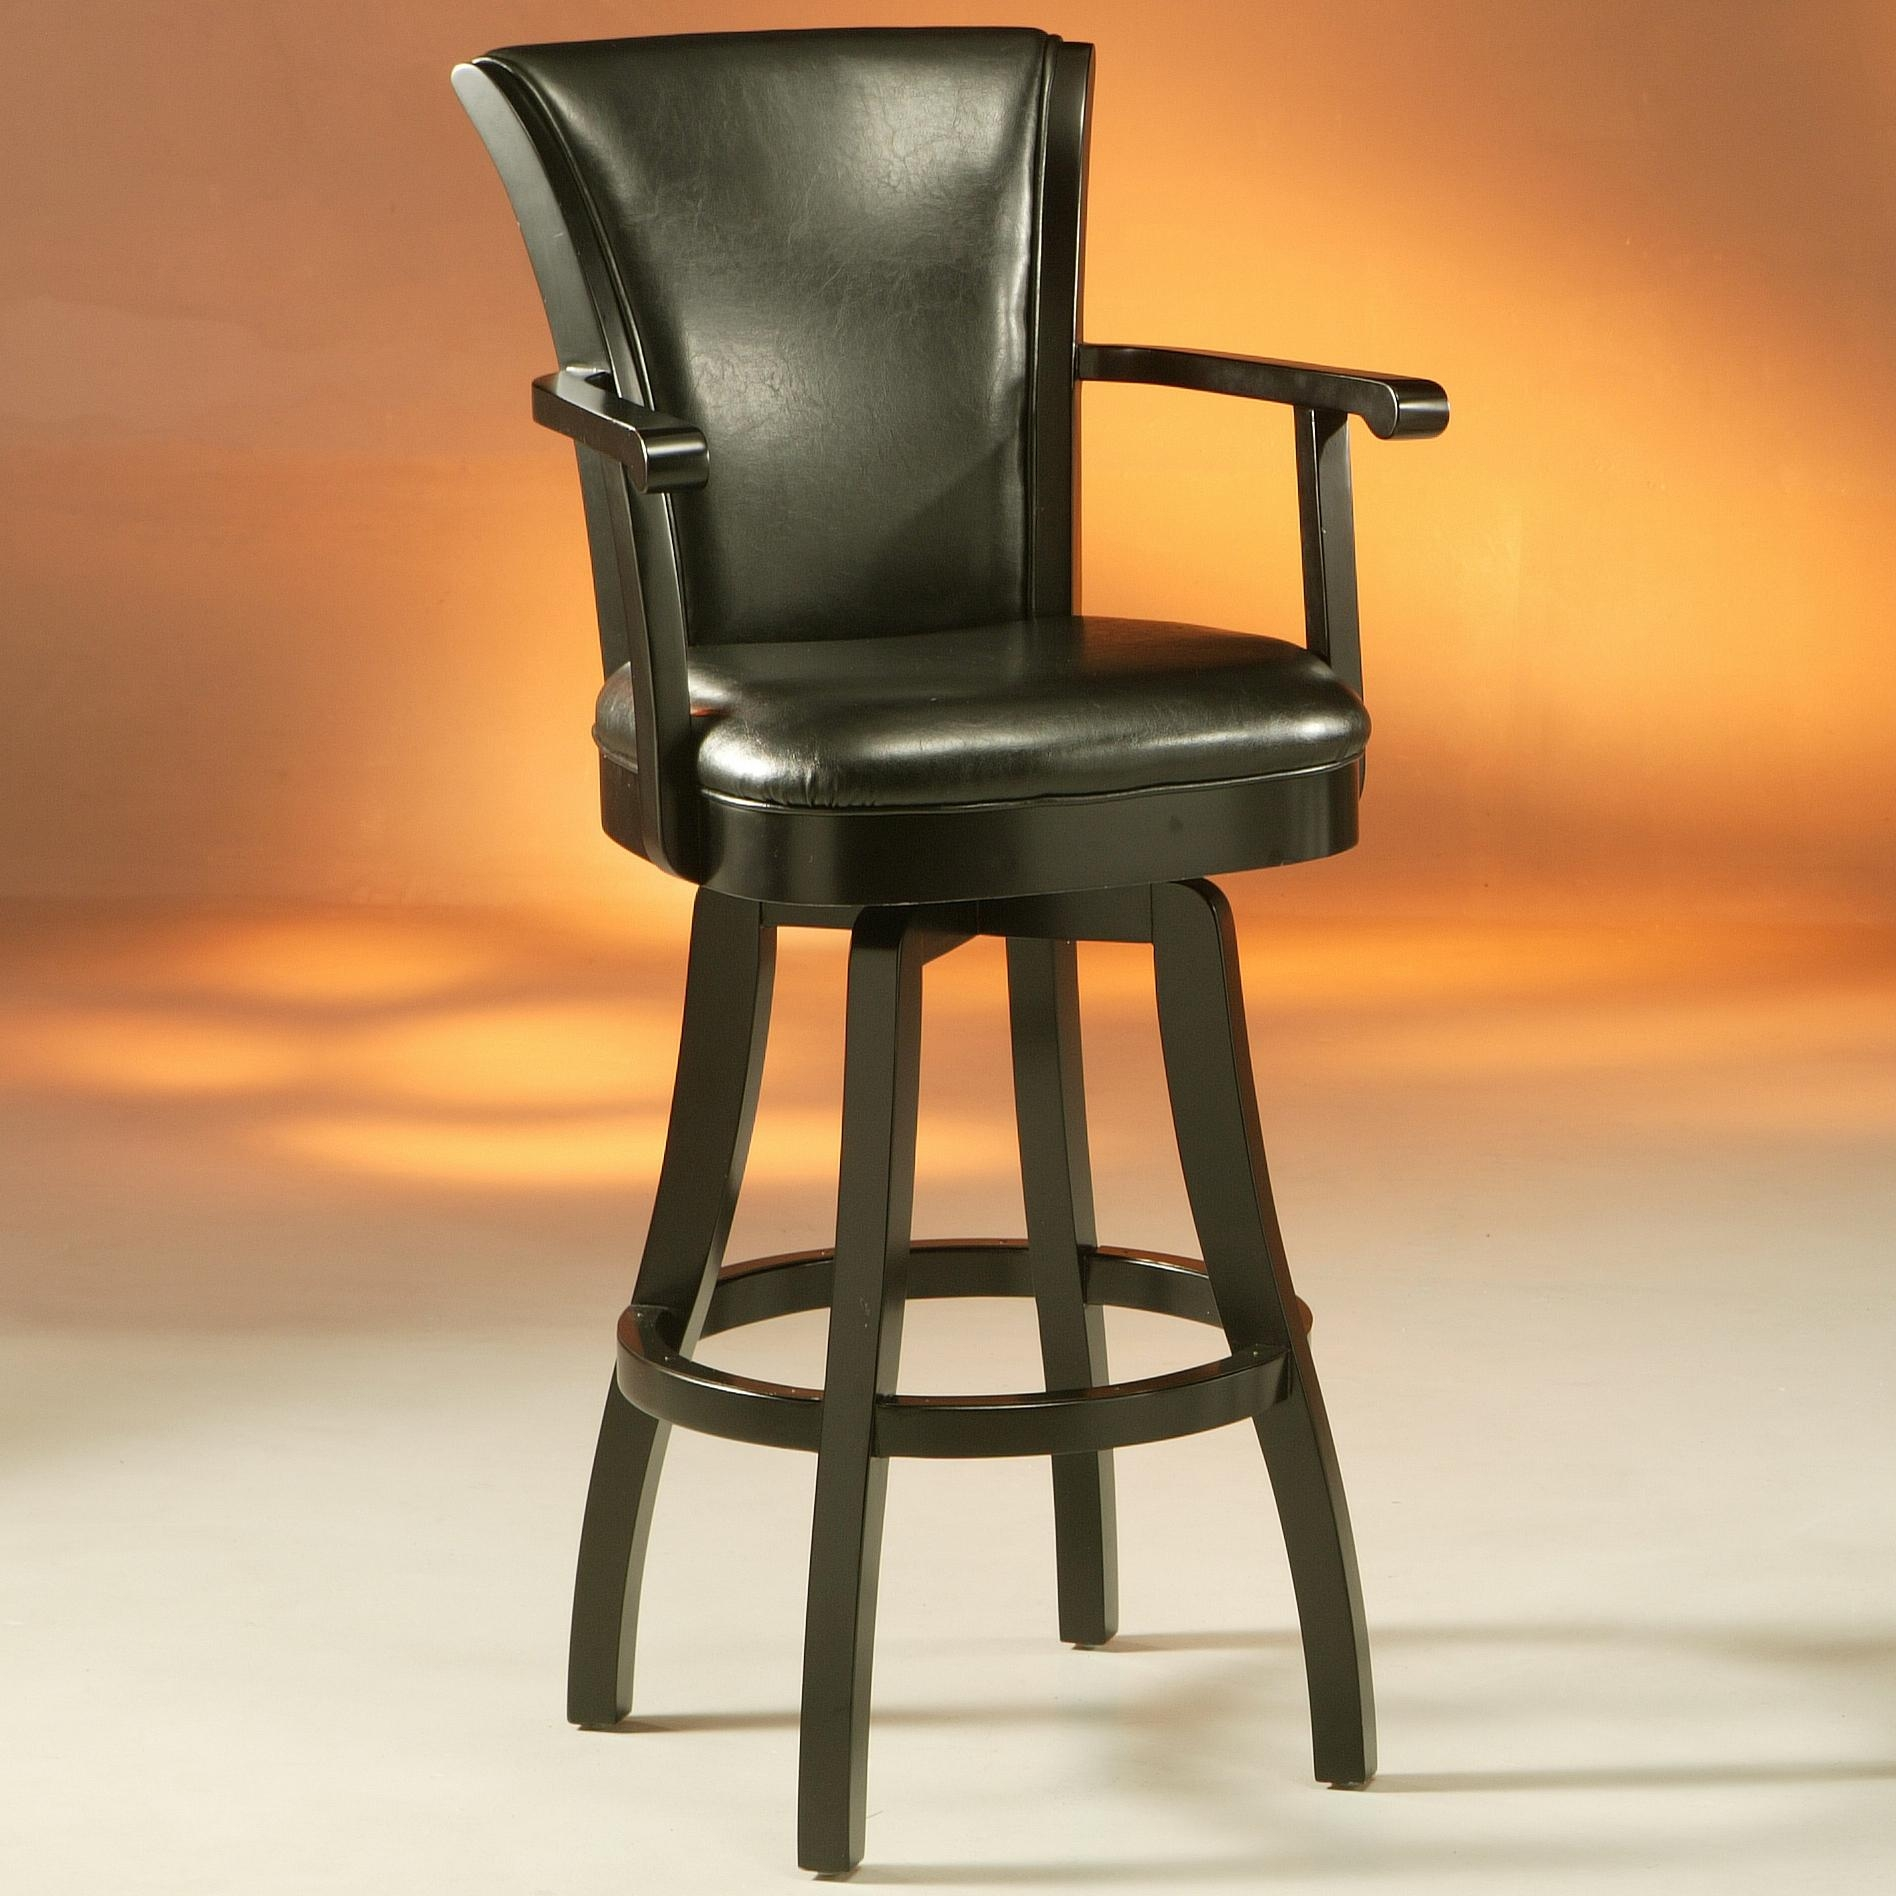 counter height arm chairs tell city chair company ideas on foter with arms